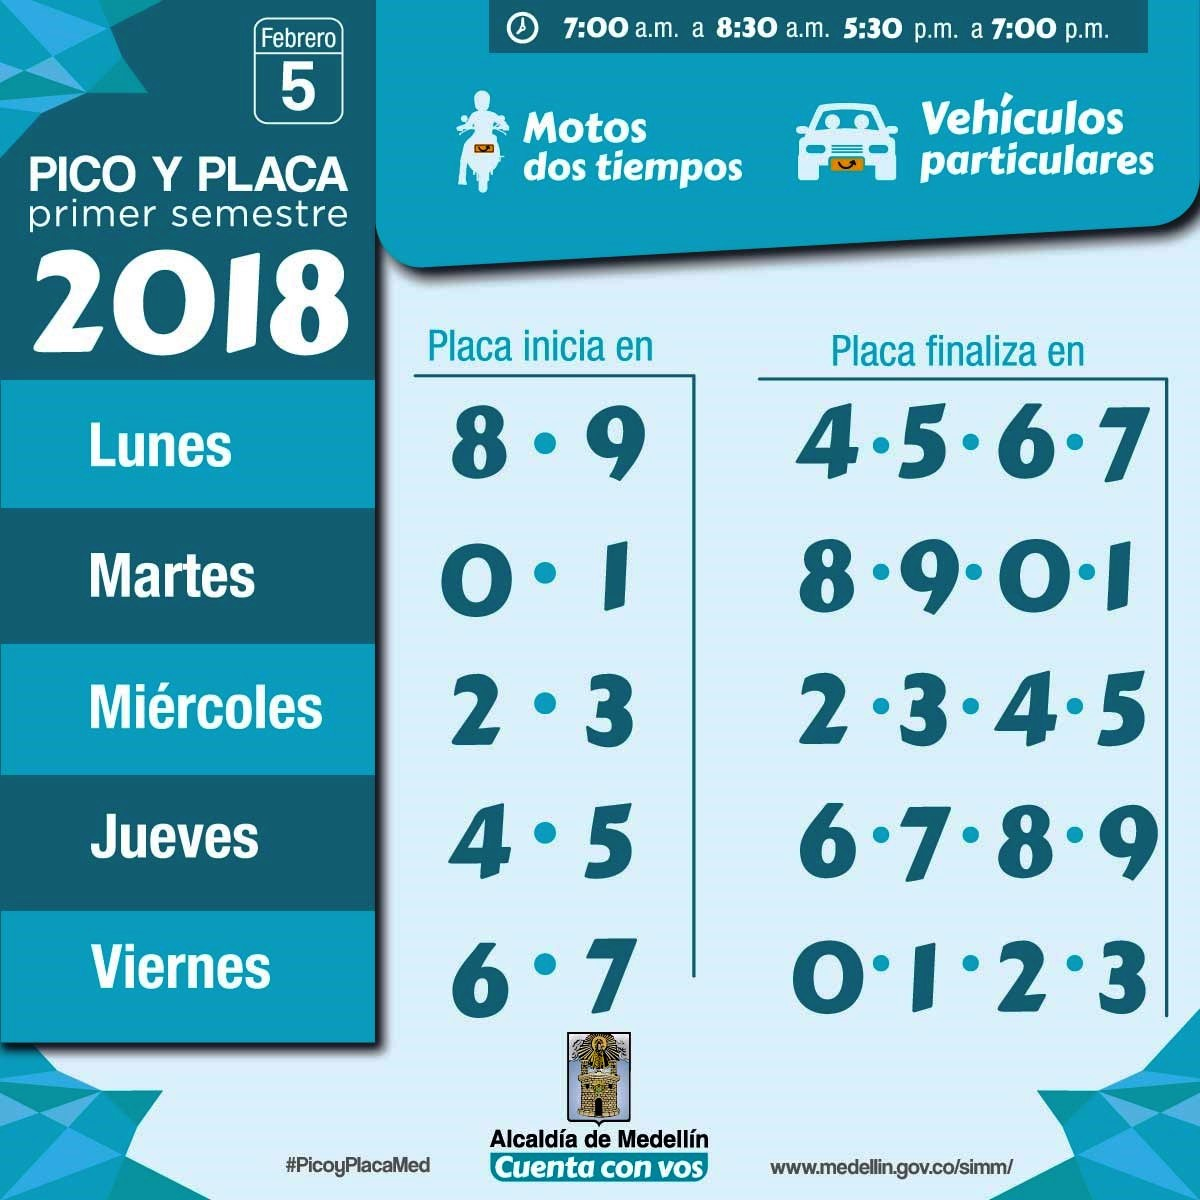 pipoyplacavehiculos2018